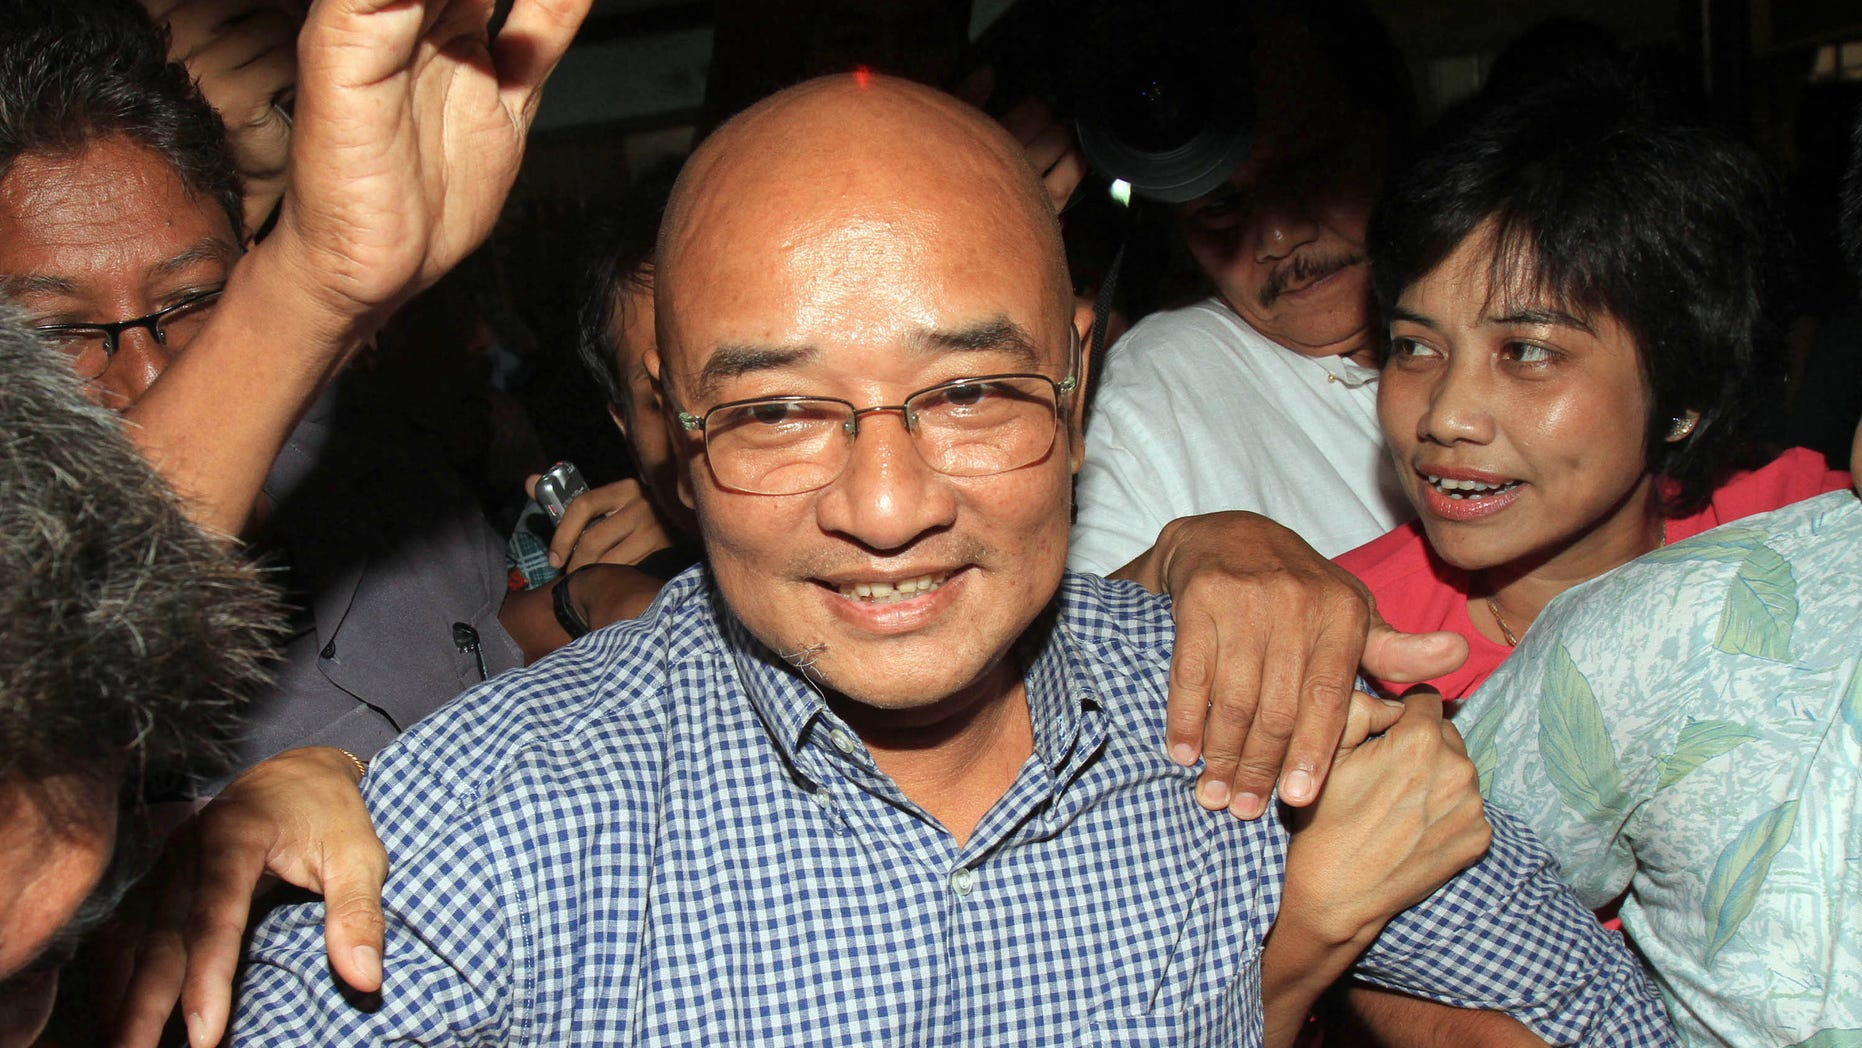 Myanmar's comedian and activist Zarganar, who was serving a 35-year sentence in Myitkyina prison in northernmost Kachin State, arrives at Yangon International Airport in Yangon, Myanmar, after he was released Wednesday, Oct. 12, 2011.